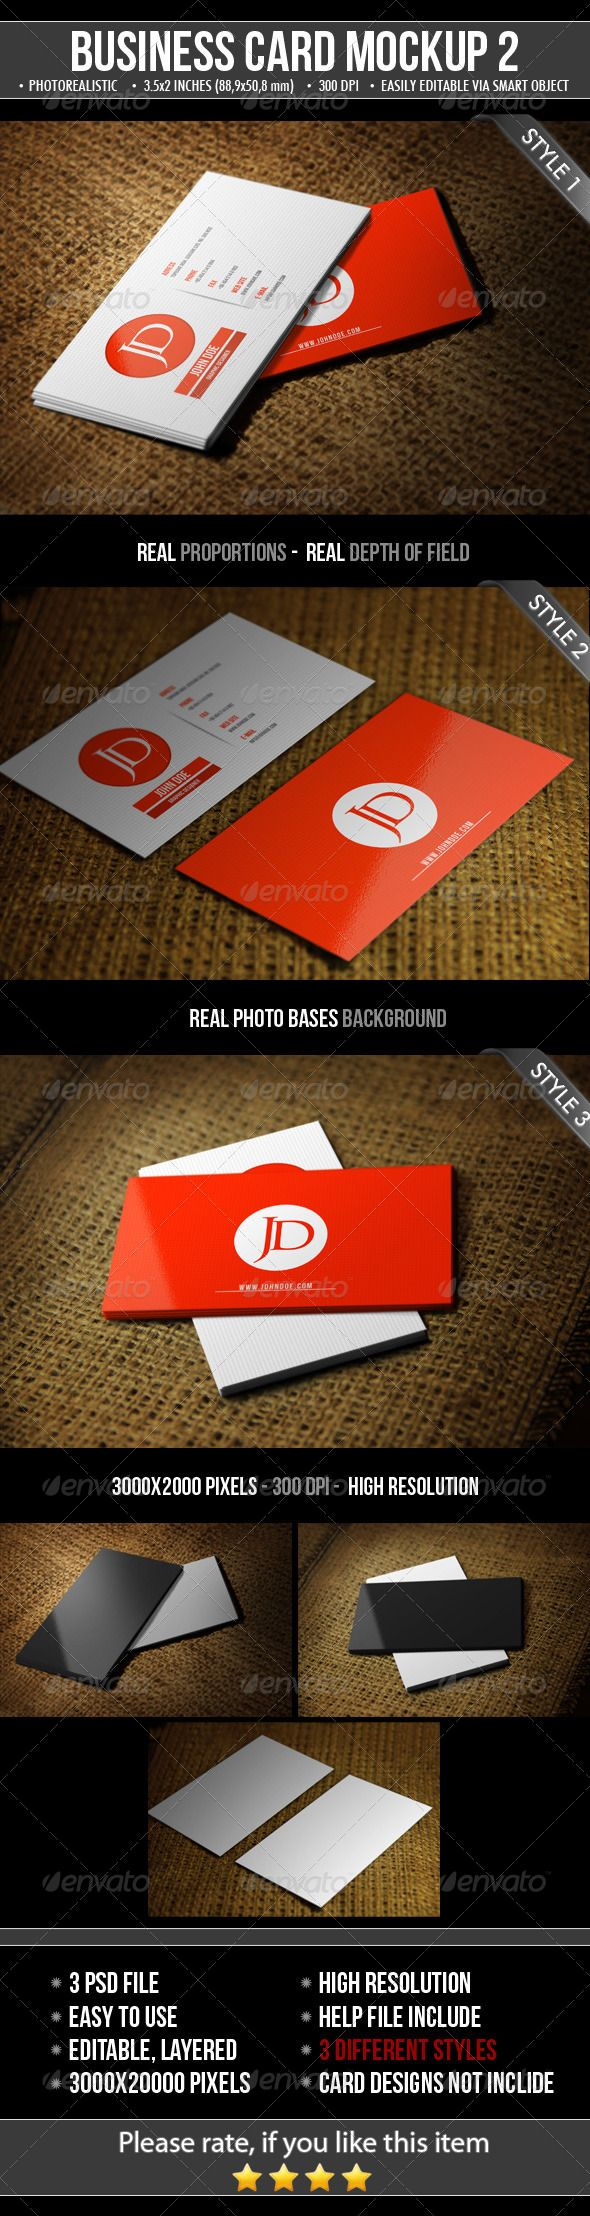 Awesome Resolution For Business Cards Ideas - Business Card Ideas ...